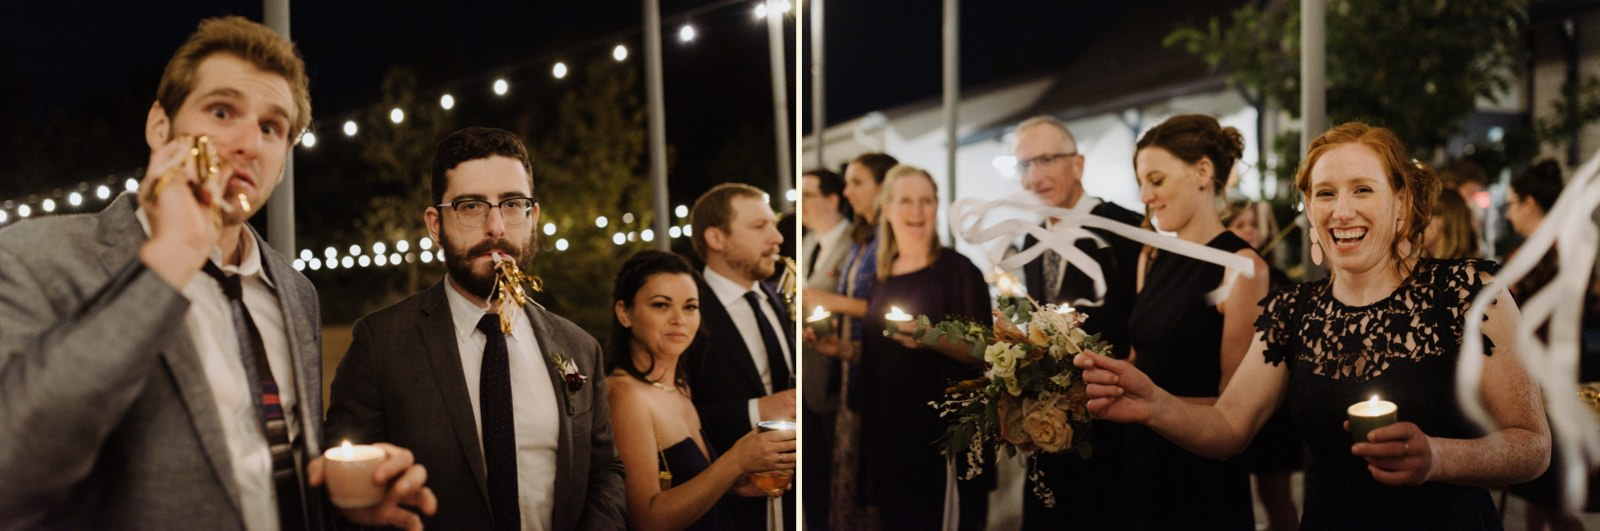 Guests enjoying a unique ribbon and noisemaker wedding exit in East Austin